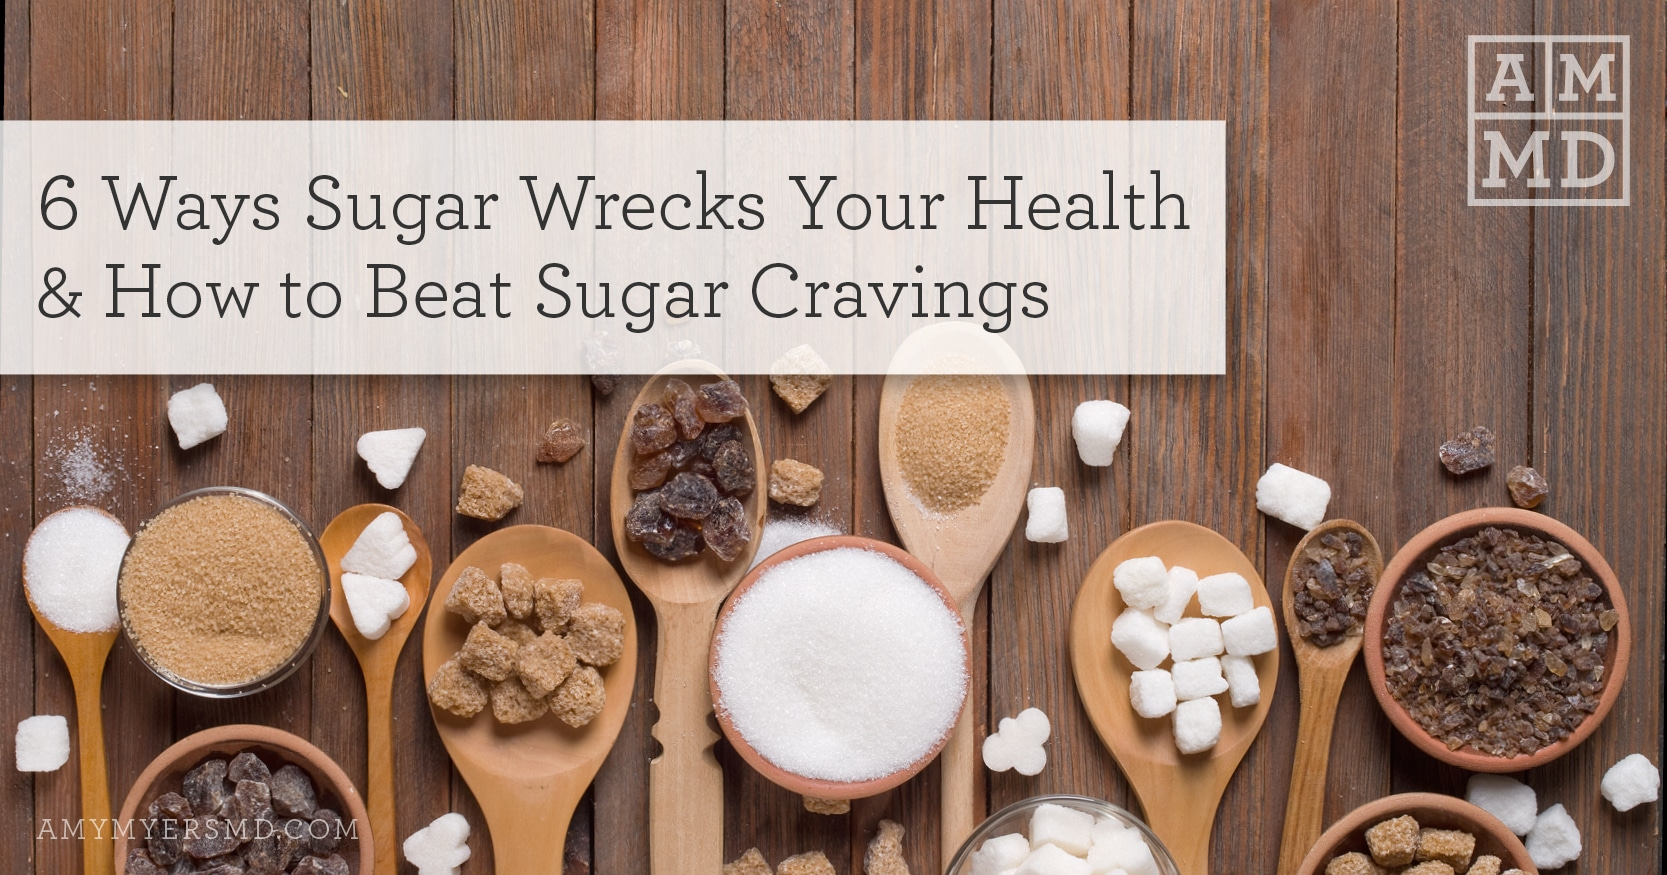 Beat Sugar Cravings - Featured Image - Amy Myers MD